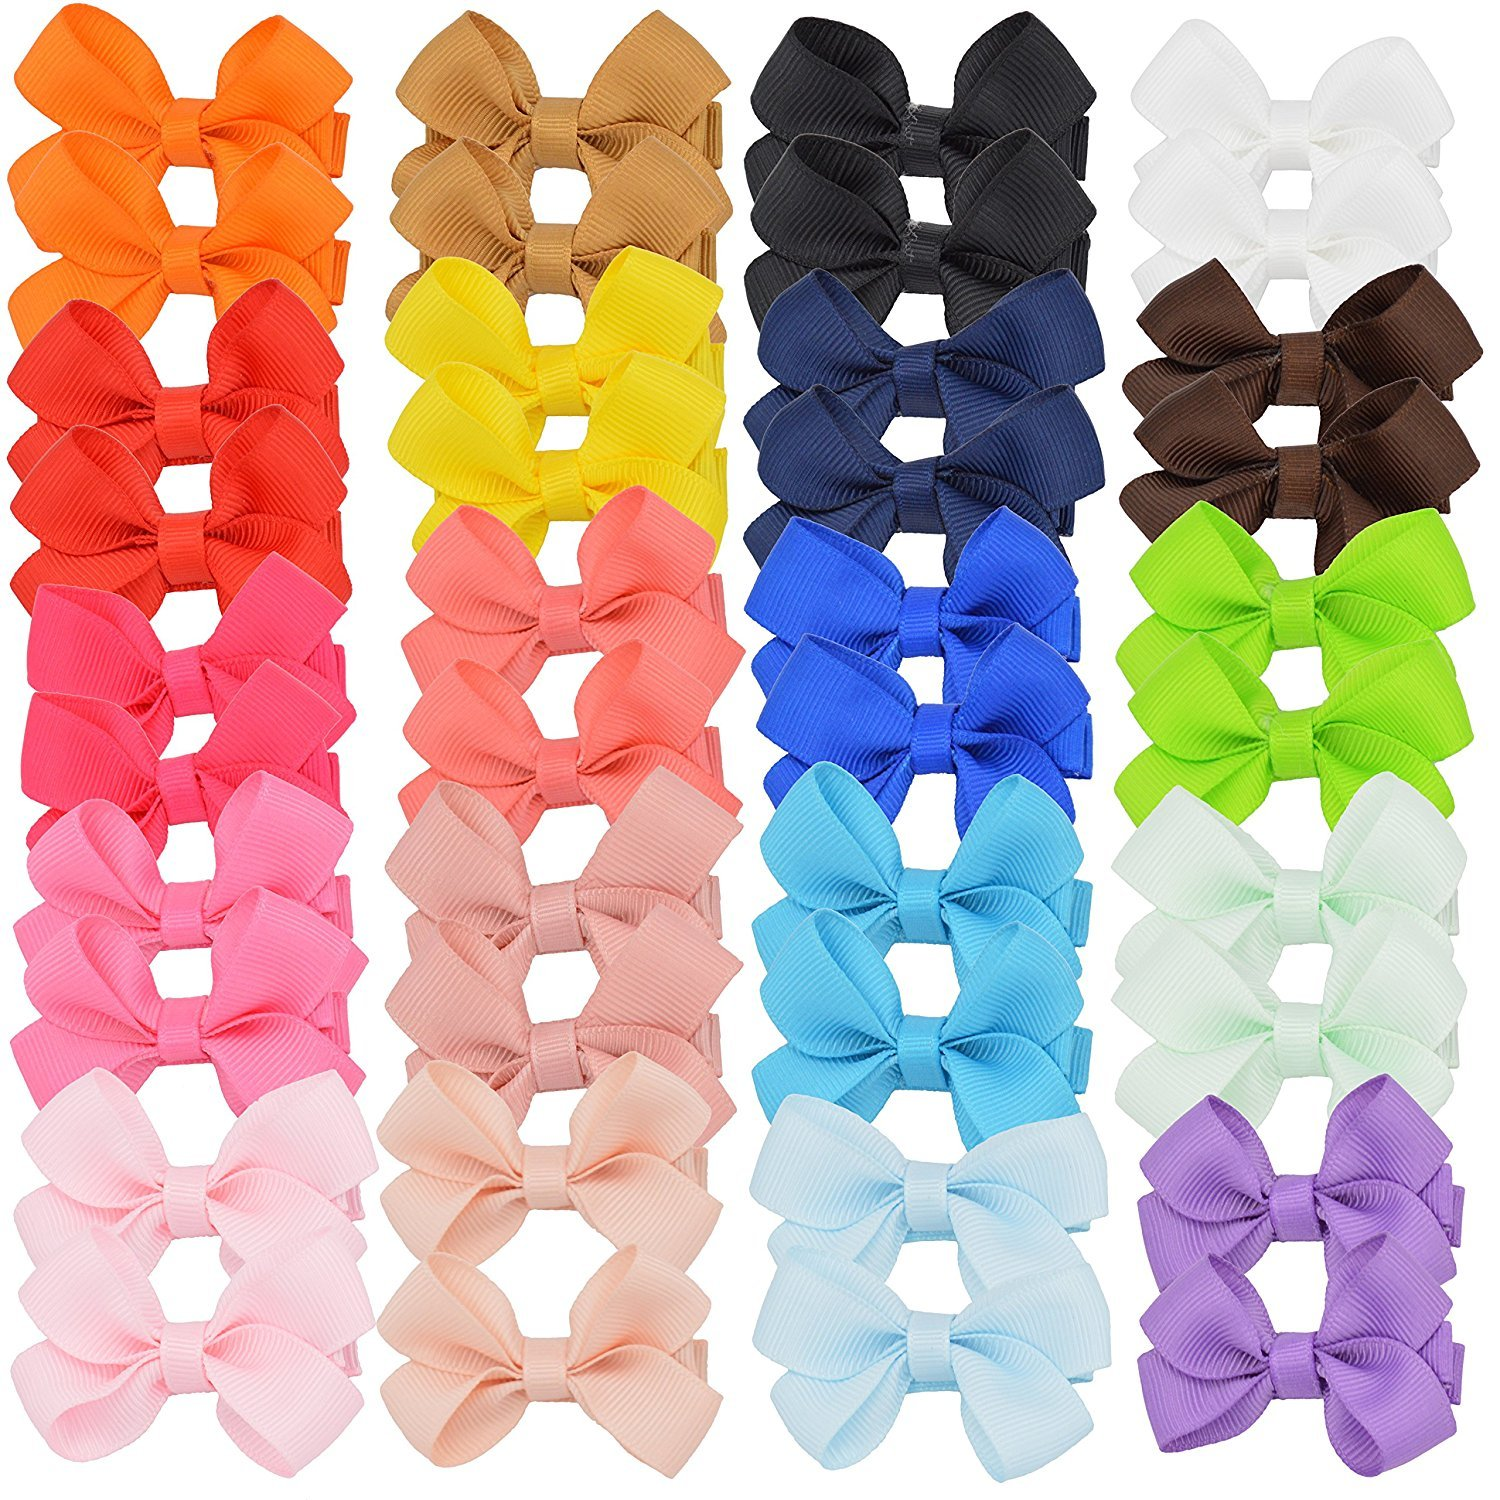 2c9f78a5b QUALITY RIBBON & GIFT PACK: This pigtail bow bulk includes 40 pieces bows  or 20 pair bows. Every small bow is handmade with high quality 5/8